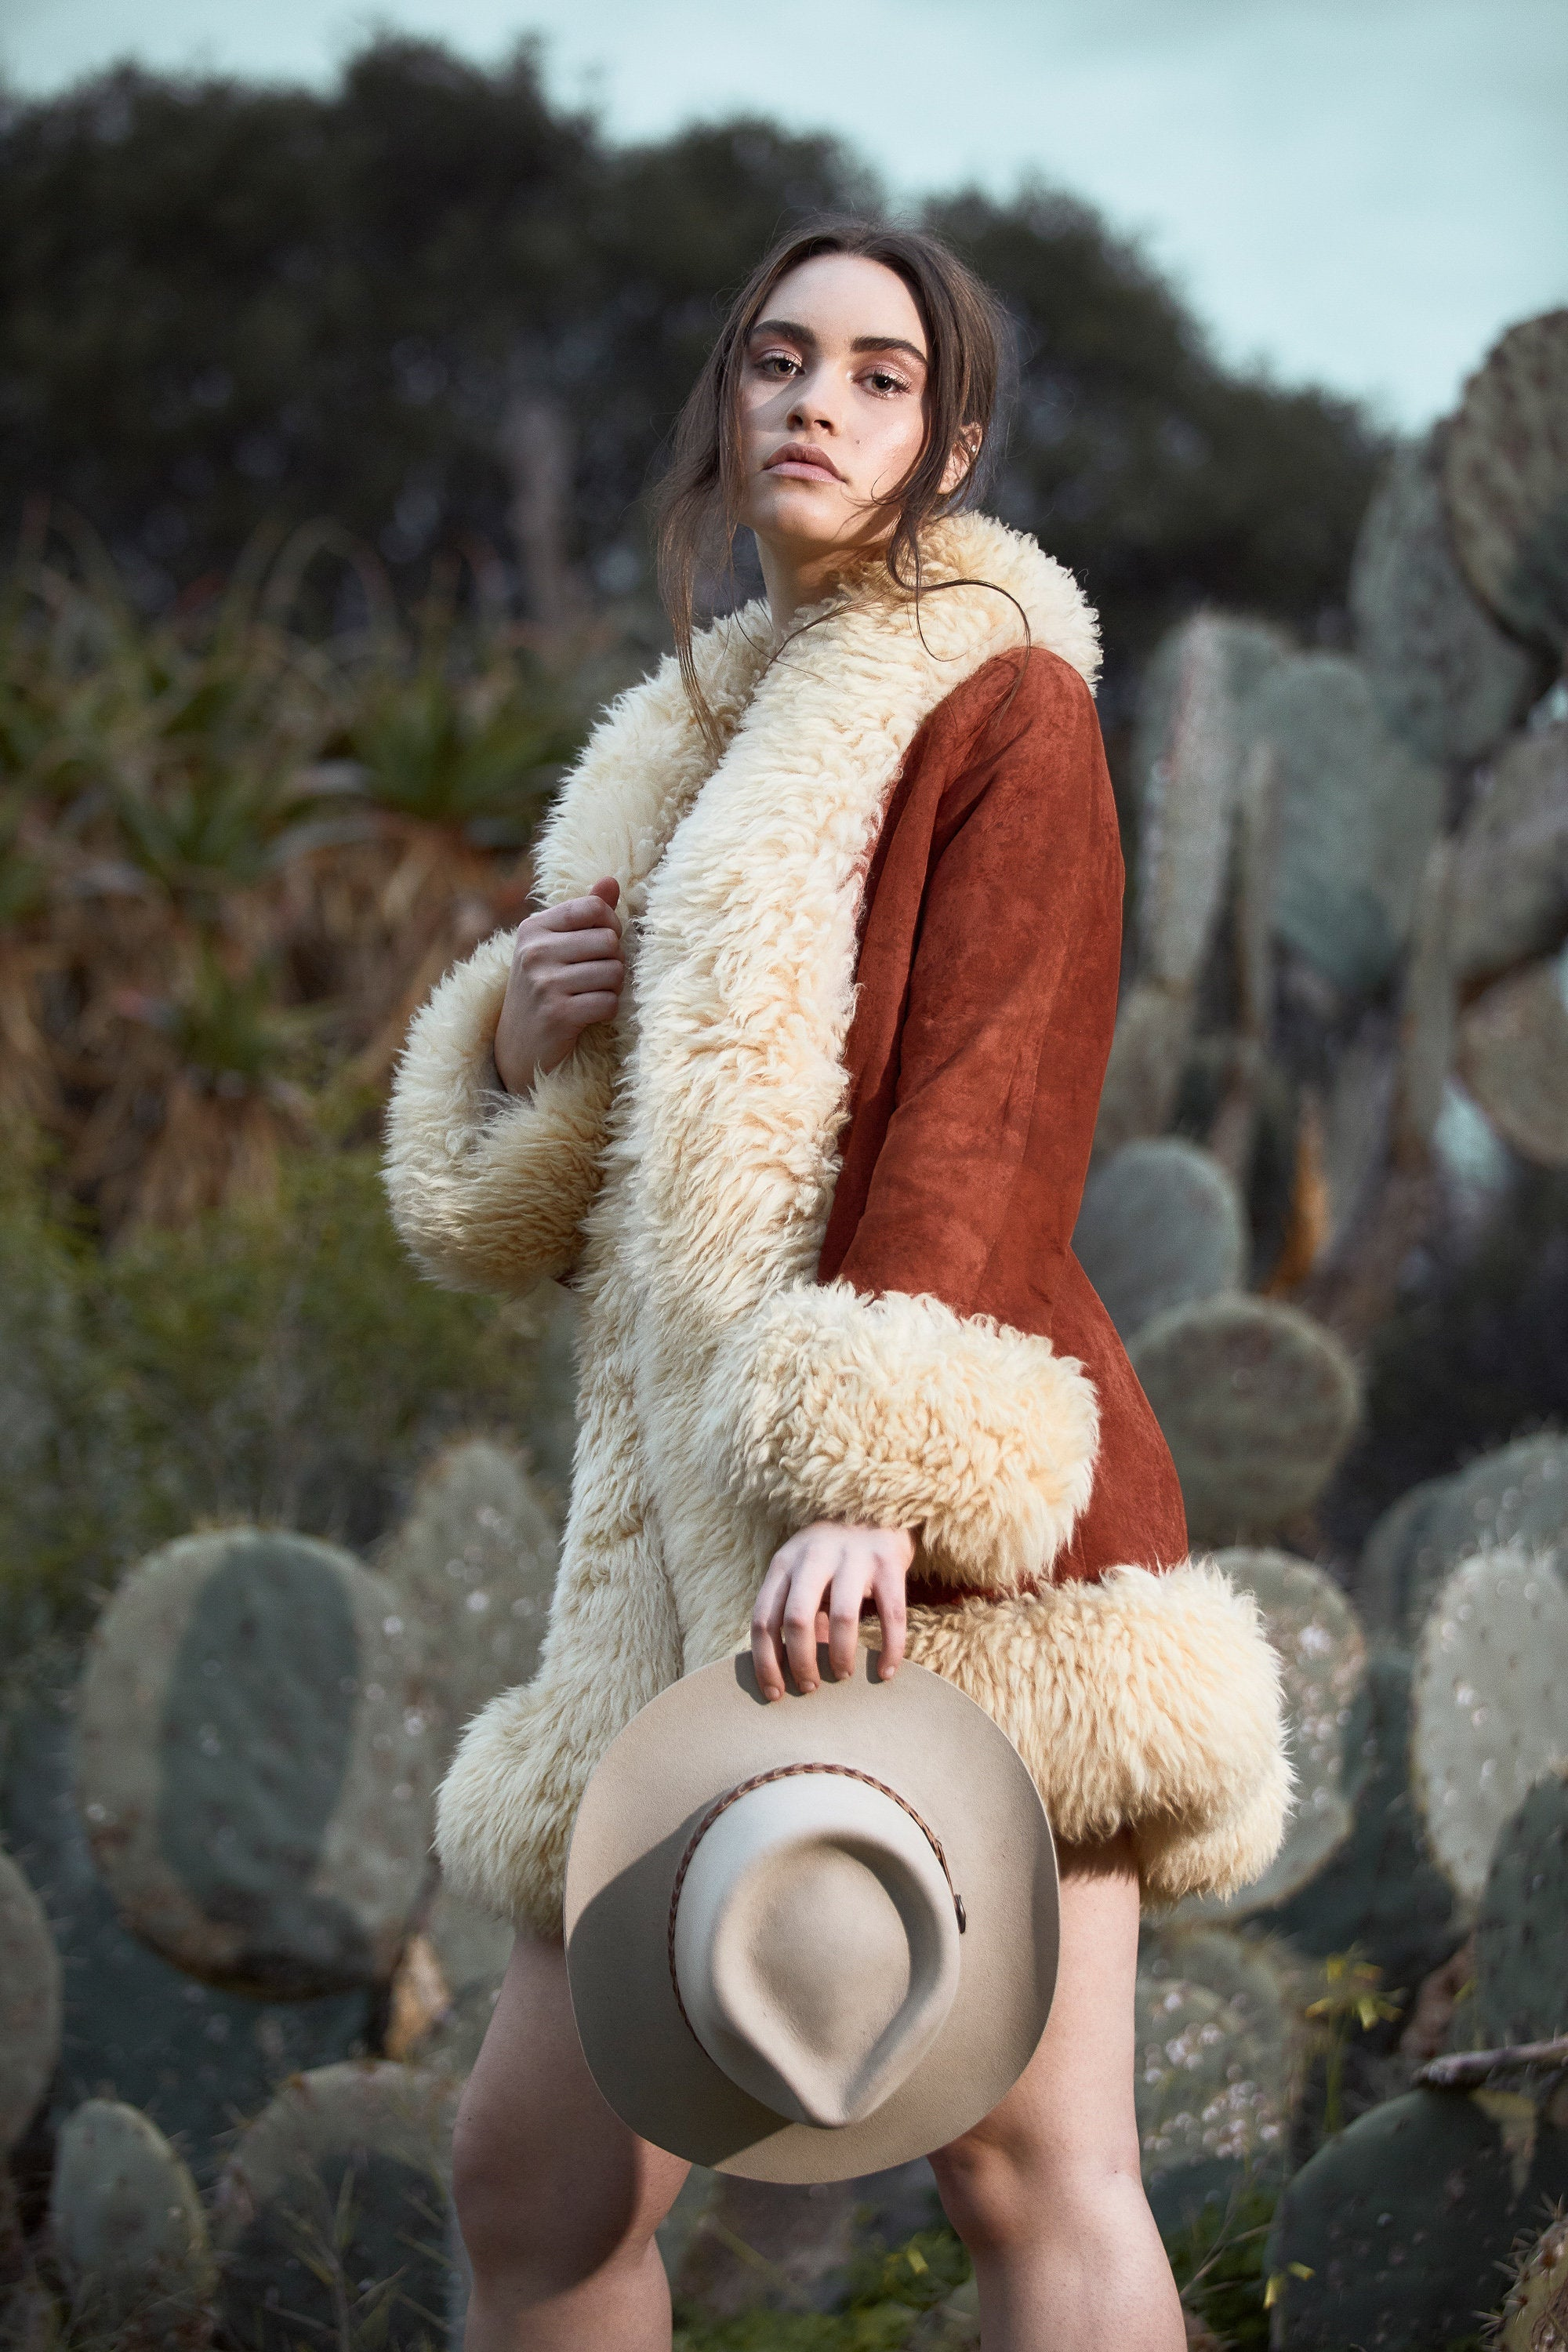 Shearling Afghan Coat - Vintage Shearling Coats - Penny Lane Coat - Sheepskin Coat - Almost Famous Coat - Boho Coat For Christmas